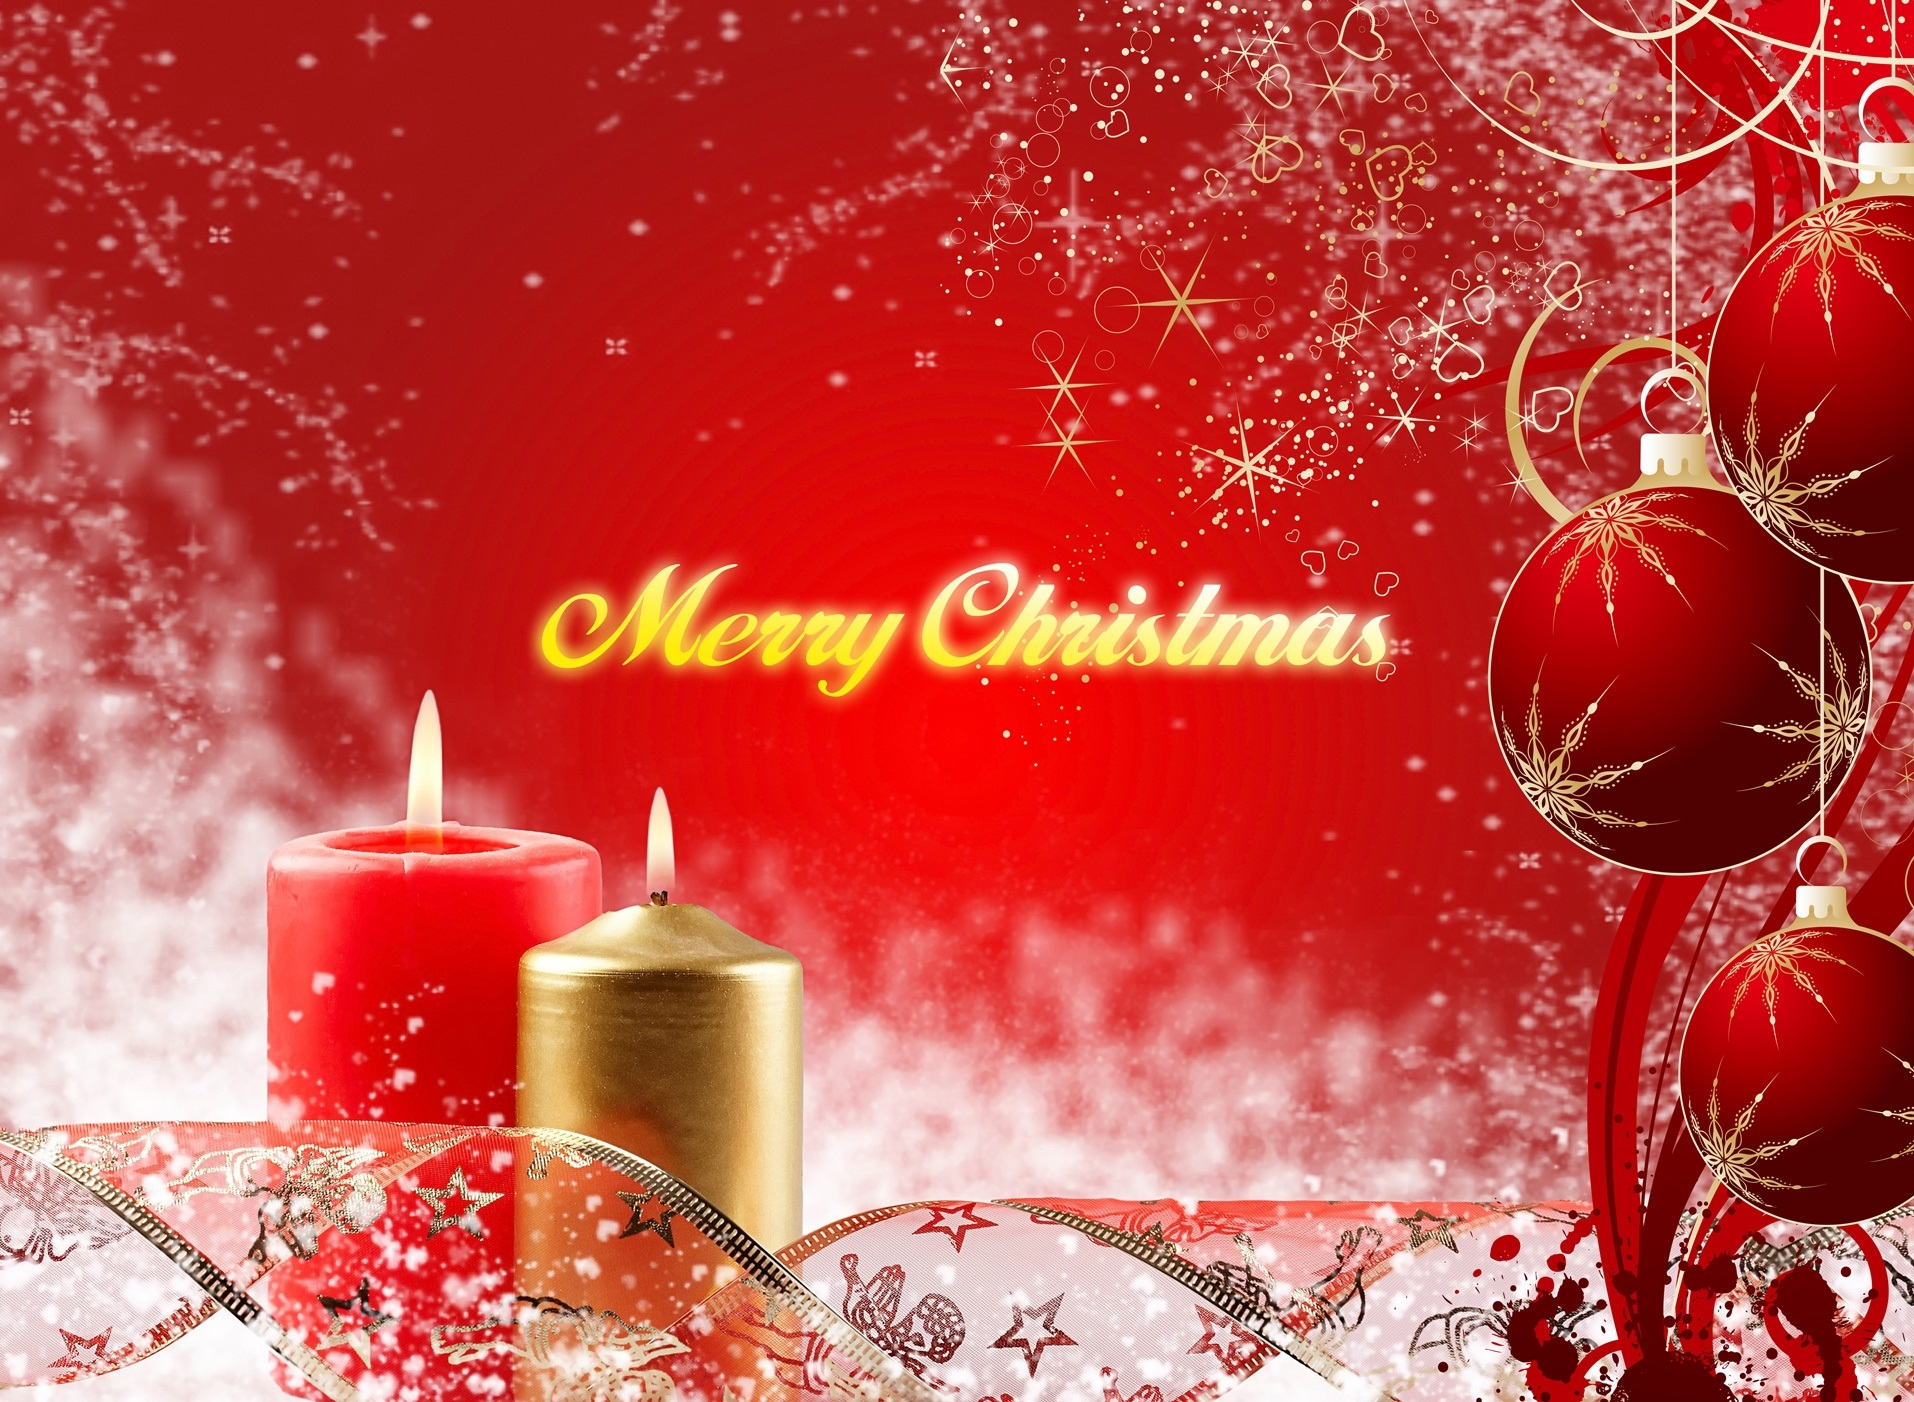 Christmas Free Wallpaper and Screensavers - WallpaperSafari